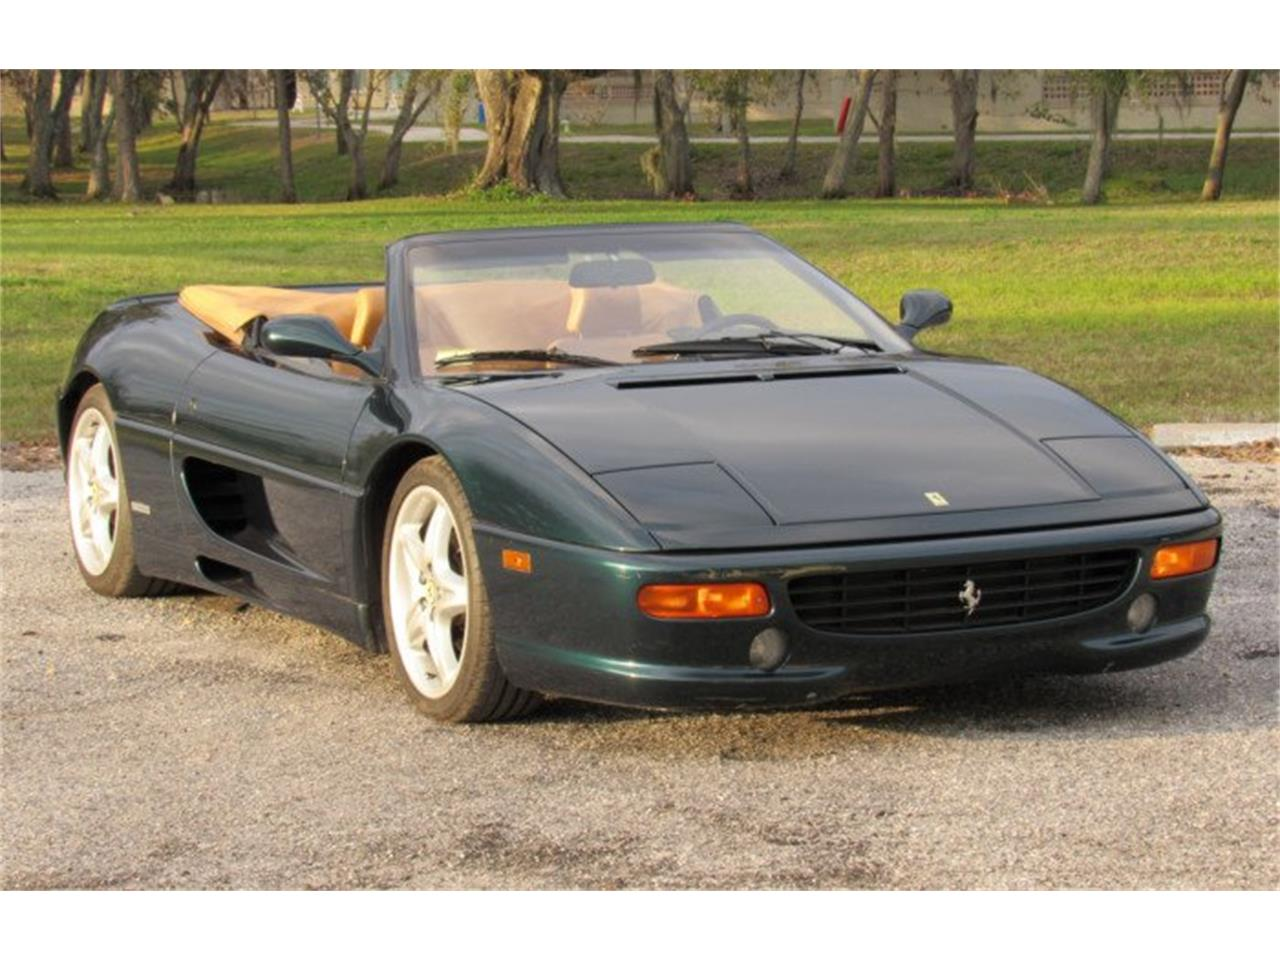 Large Picture of '95 F355 Auction Vehicle Offered by Premier Auction Group - PH0T